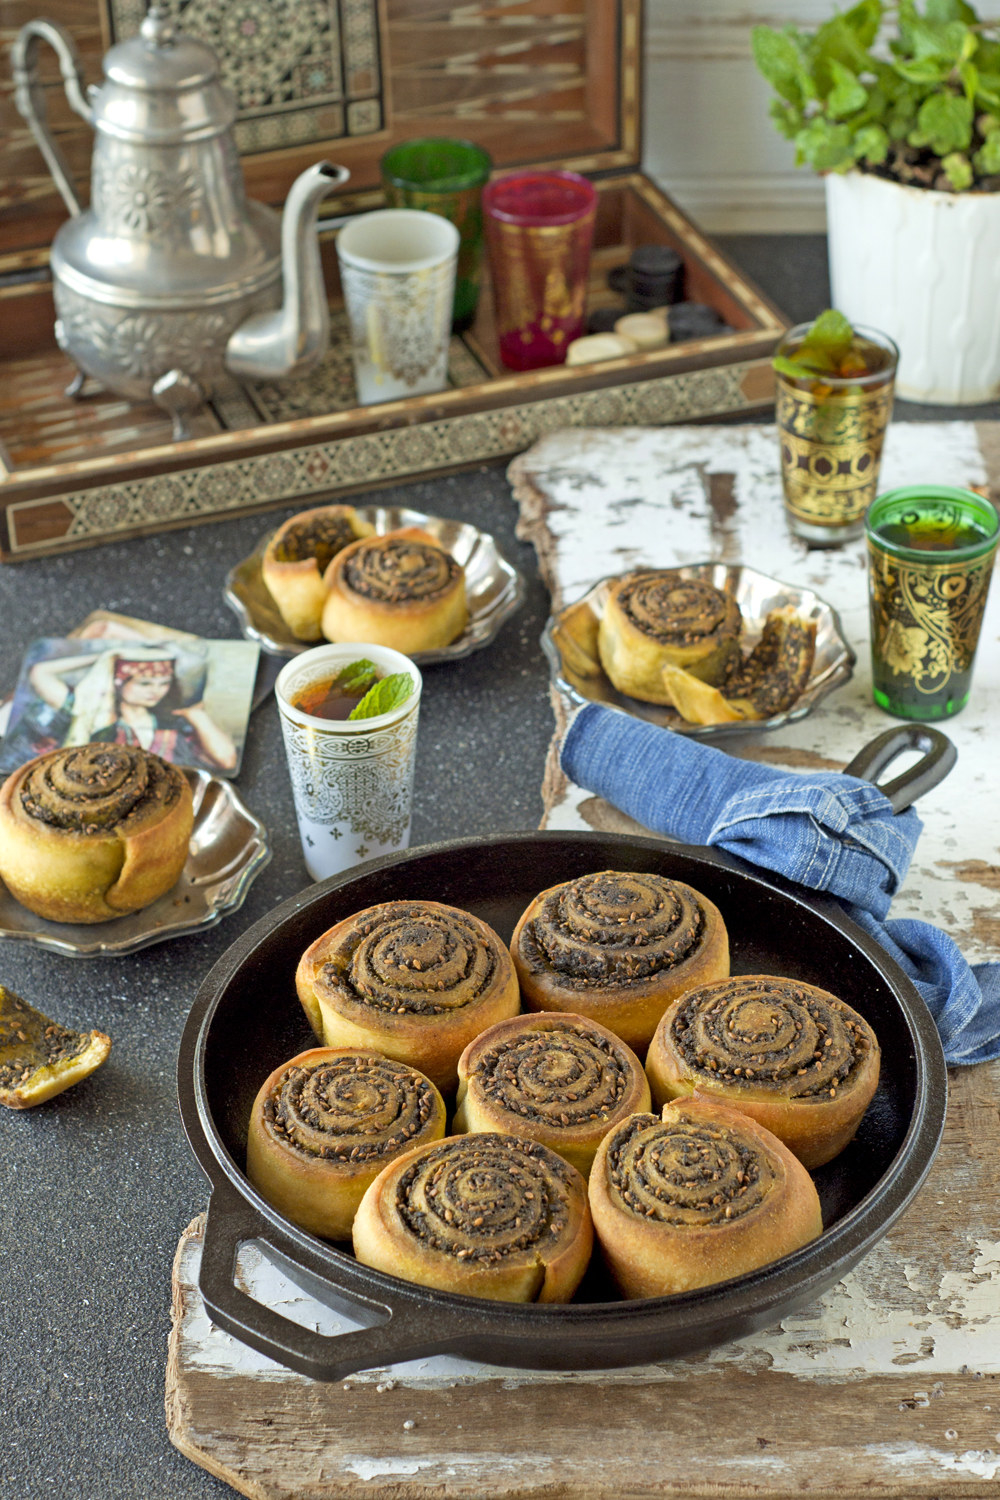 A round pan of tightly rolled buns, covered in a grainy spice mixture with various tea products in the background